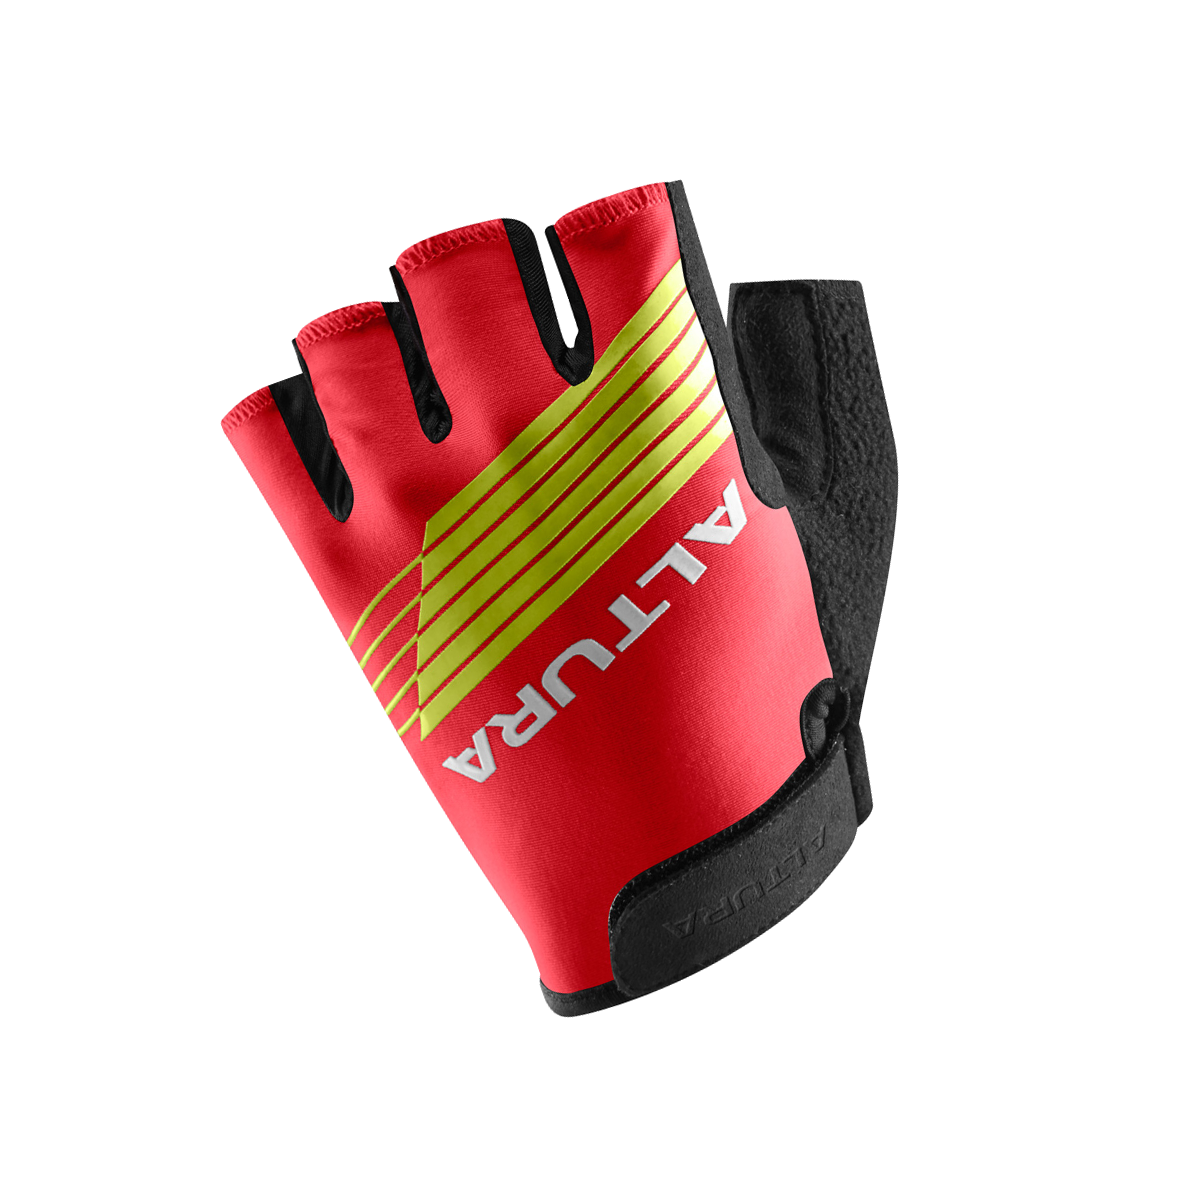 ALTURA YOUTH SPORTIVE MITTS  2016: BLUE/BLACK 10-12YRS